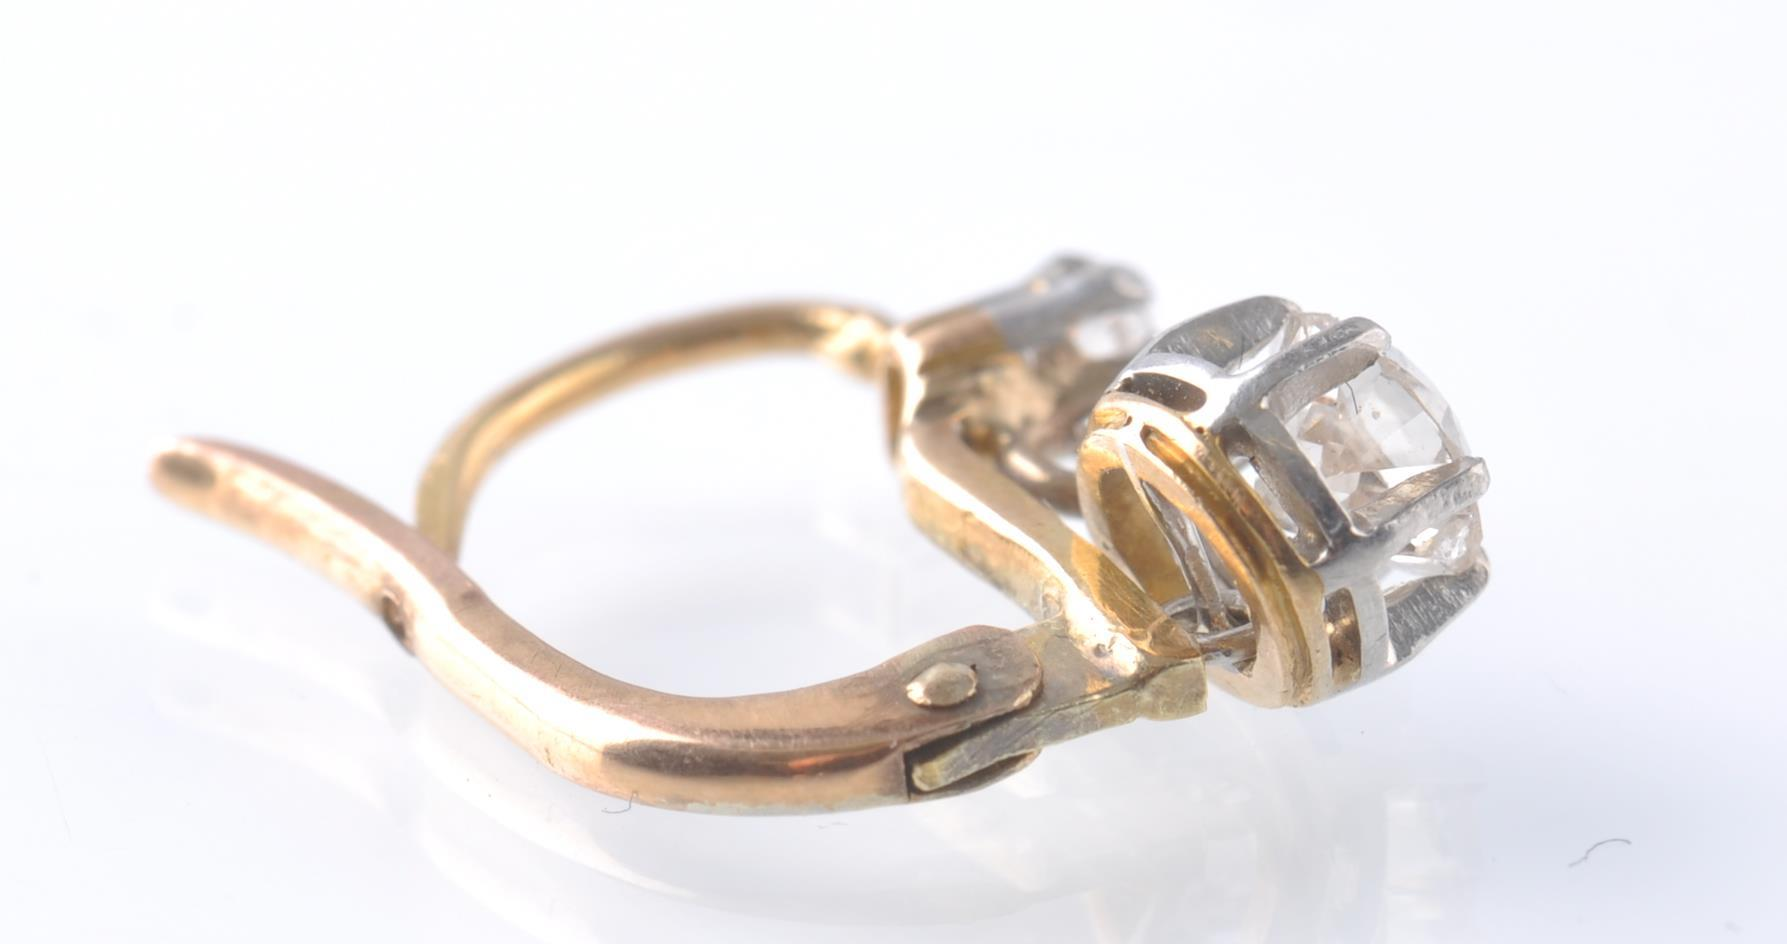 A PAIR OF FRENCH 18CT GOLD PLATINUM AND DIAMOND DR - Image 3 of 3